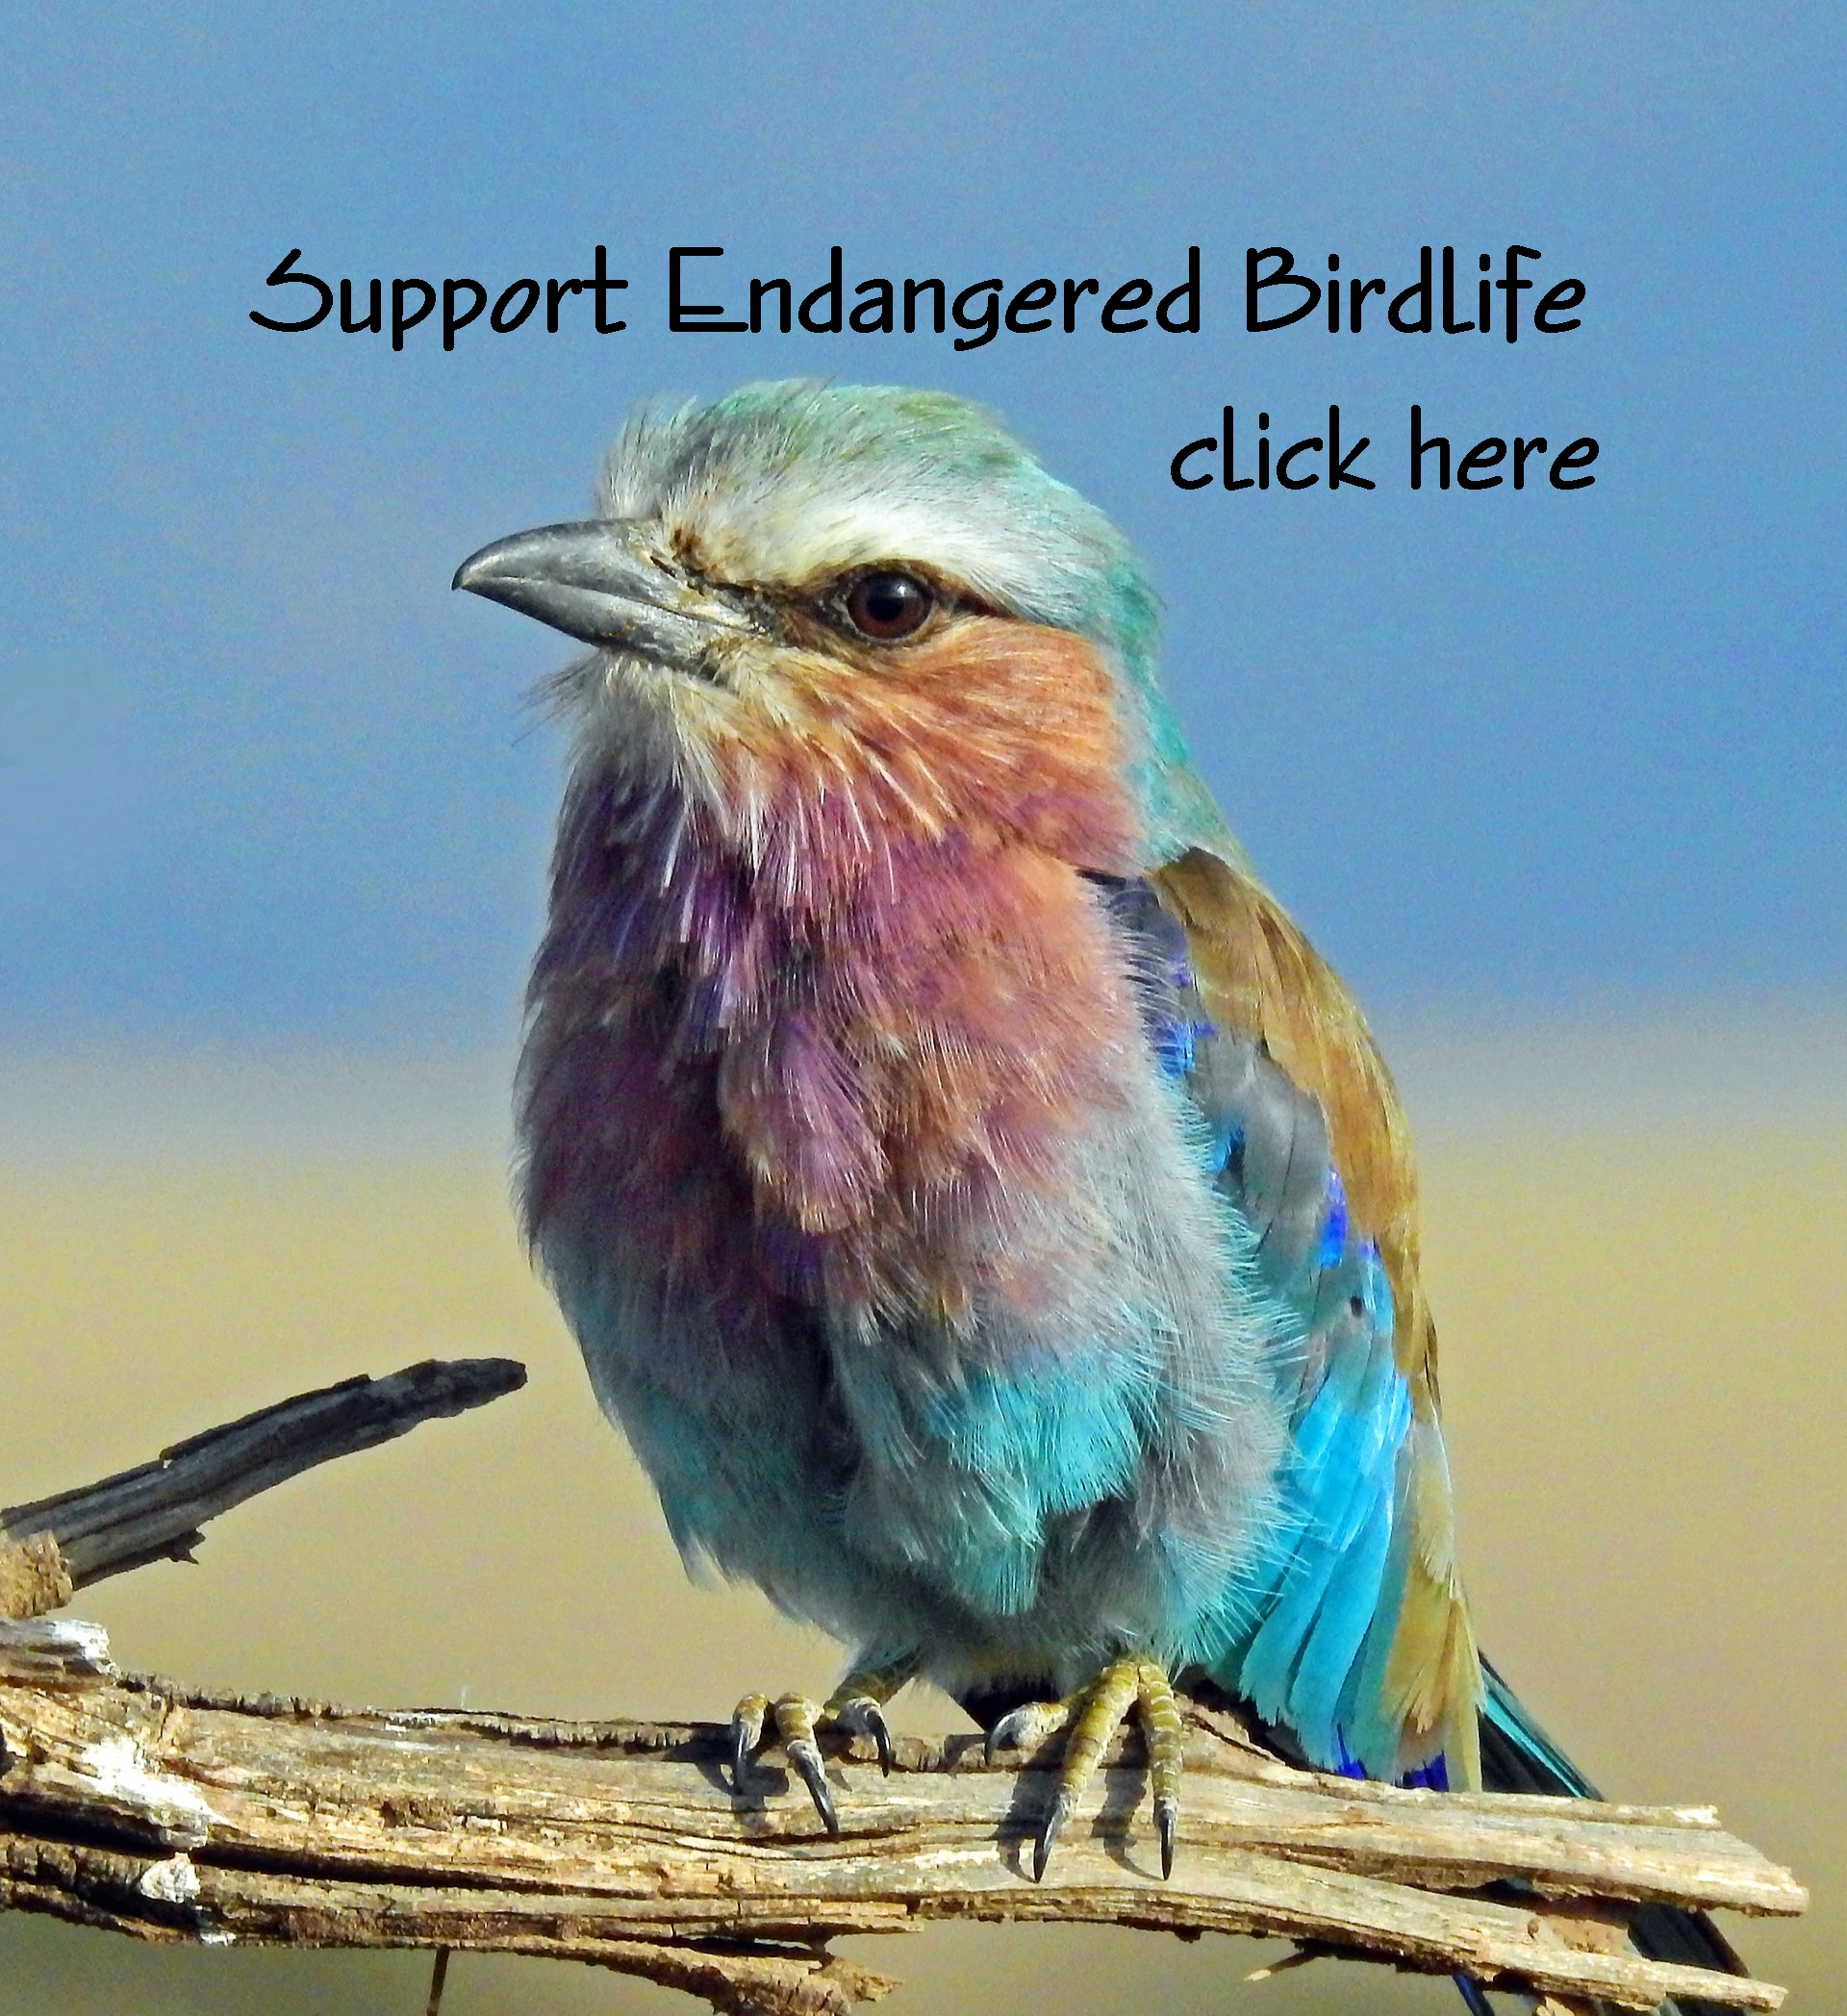 Support endangered birds